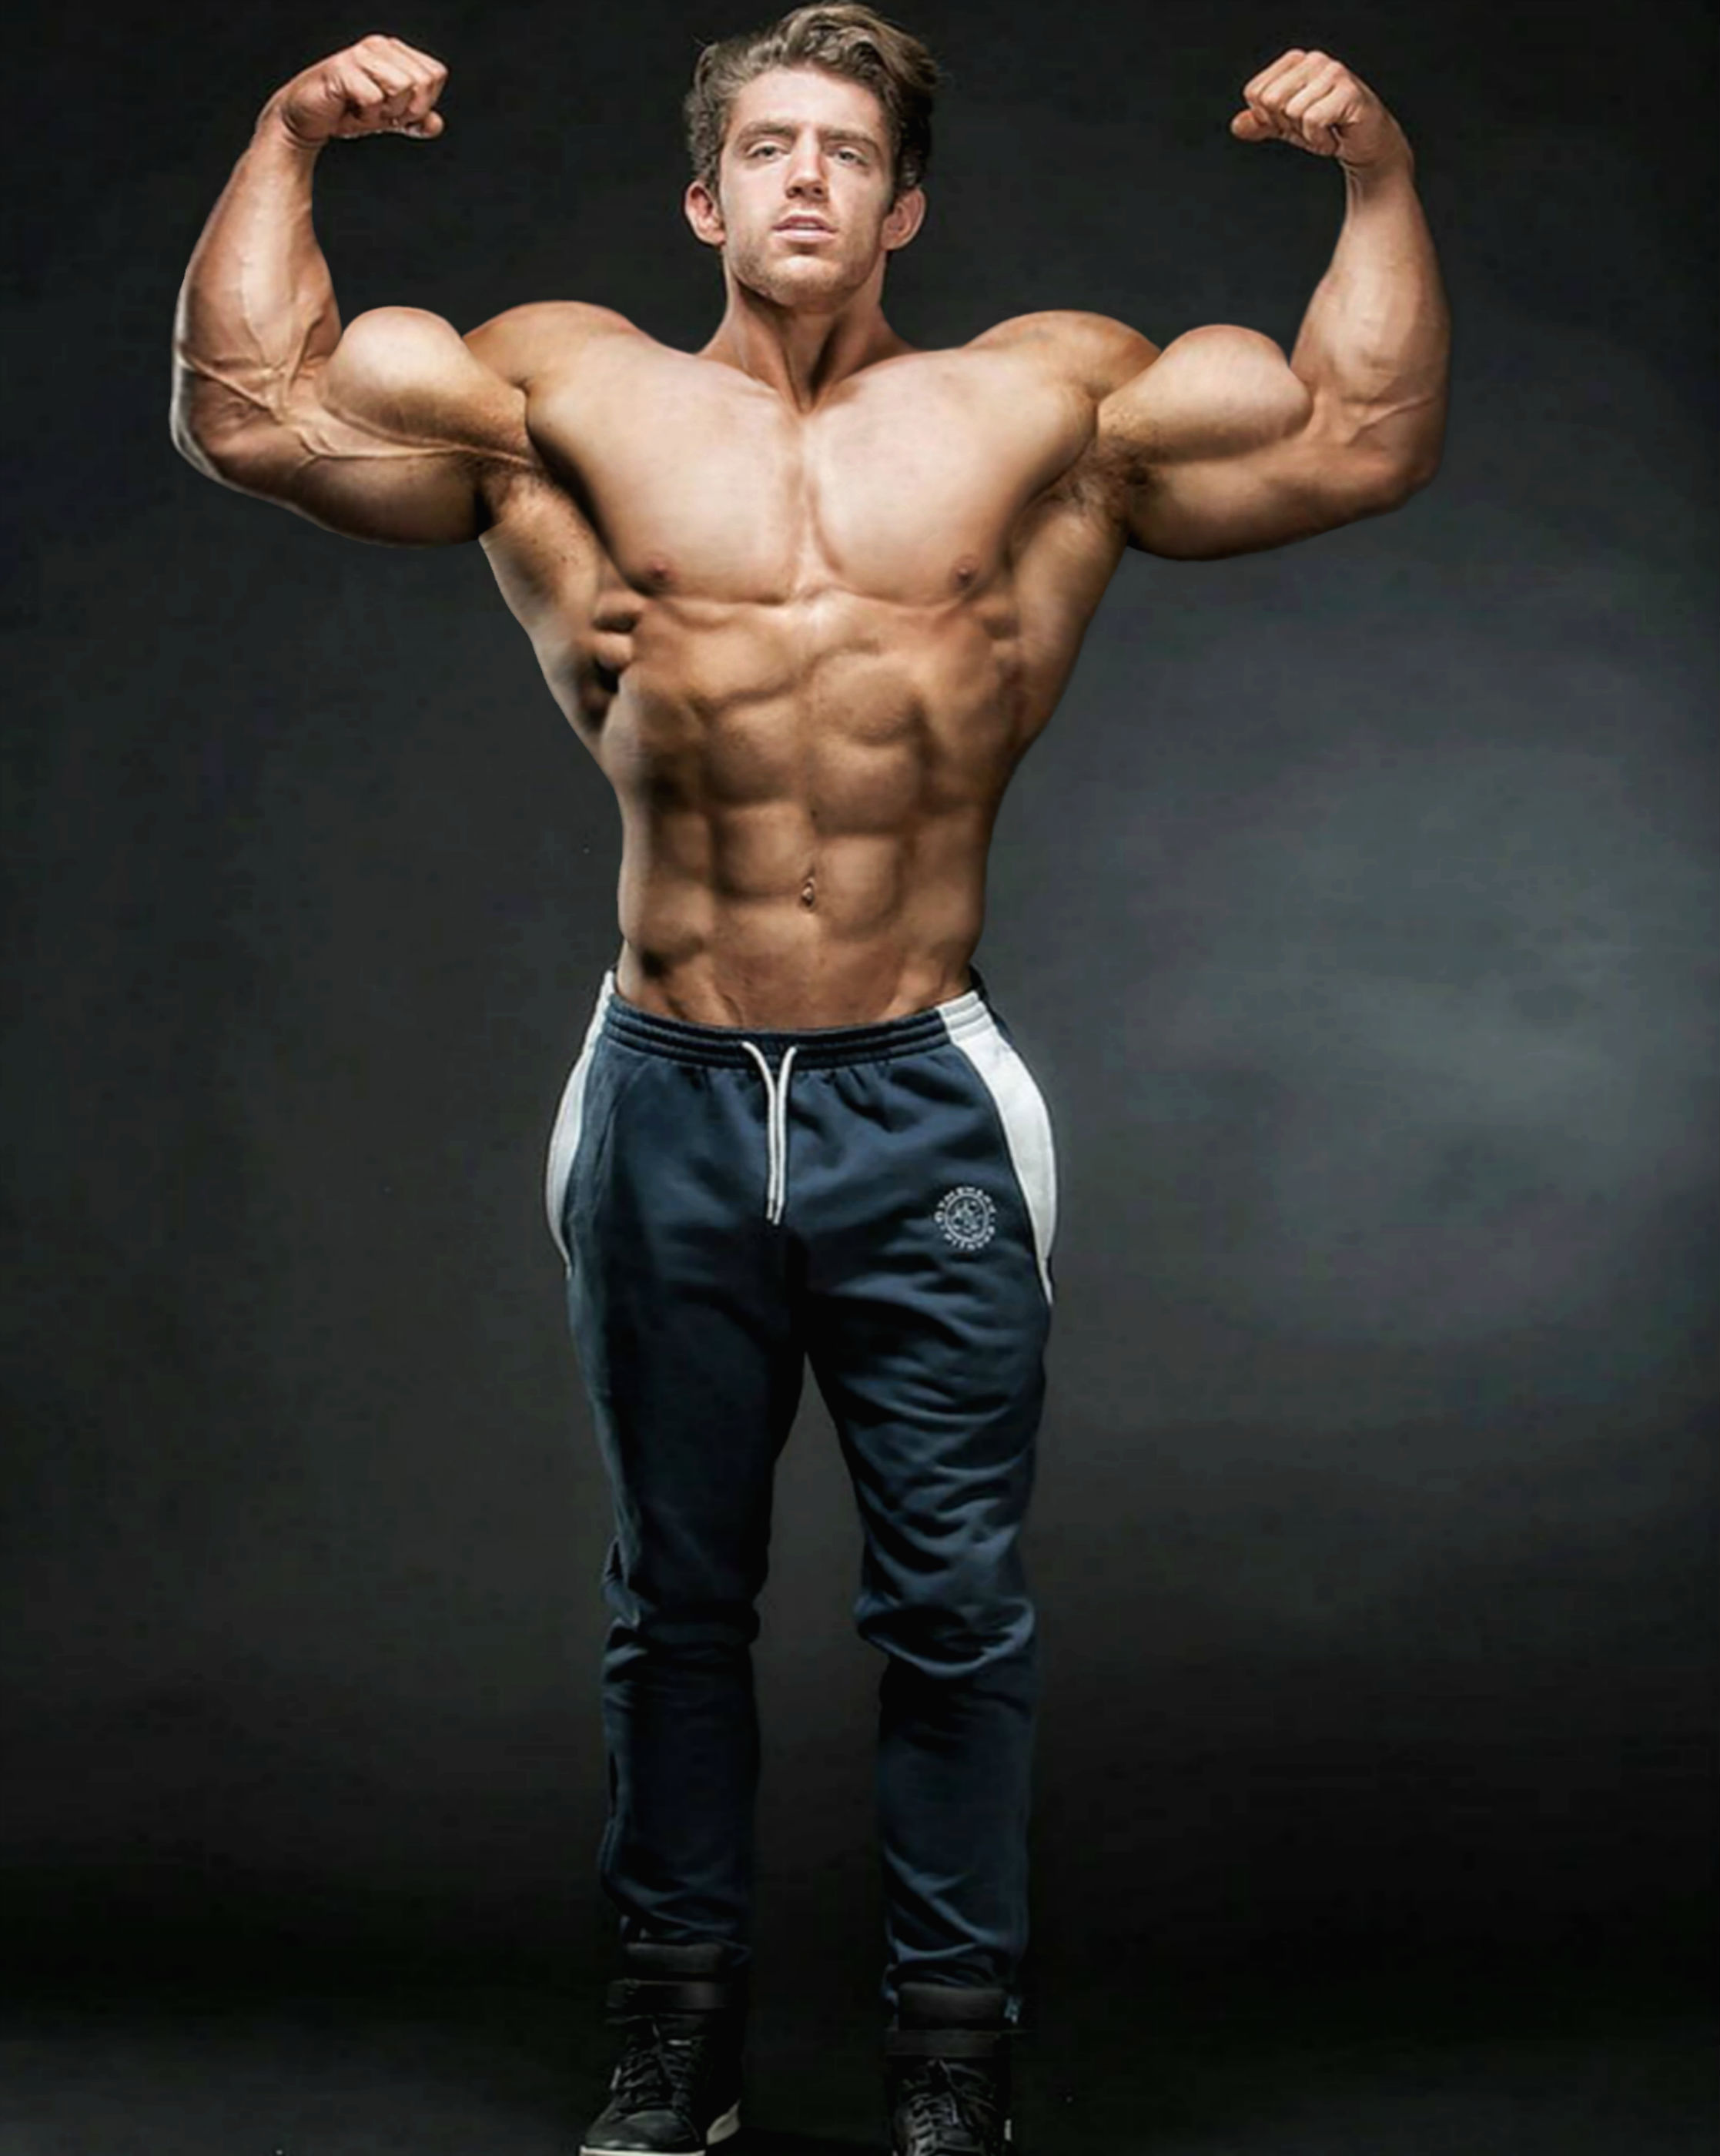 Bodybuilder Muscle Morph 7 by theology132 on DeviantArt